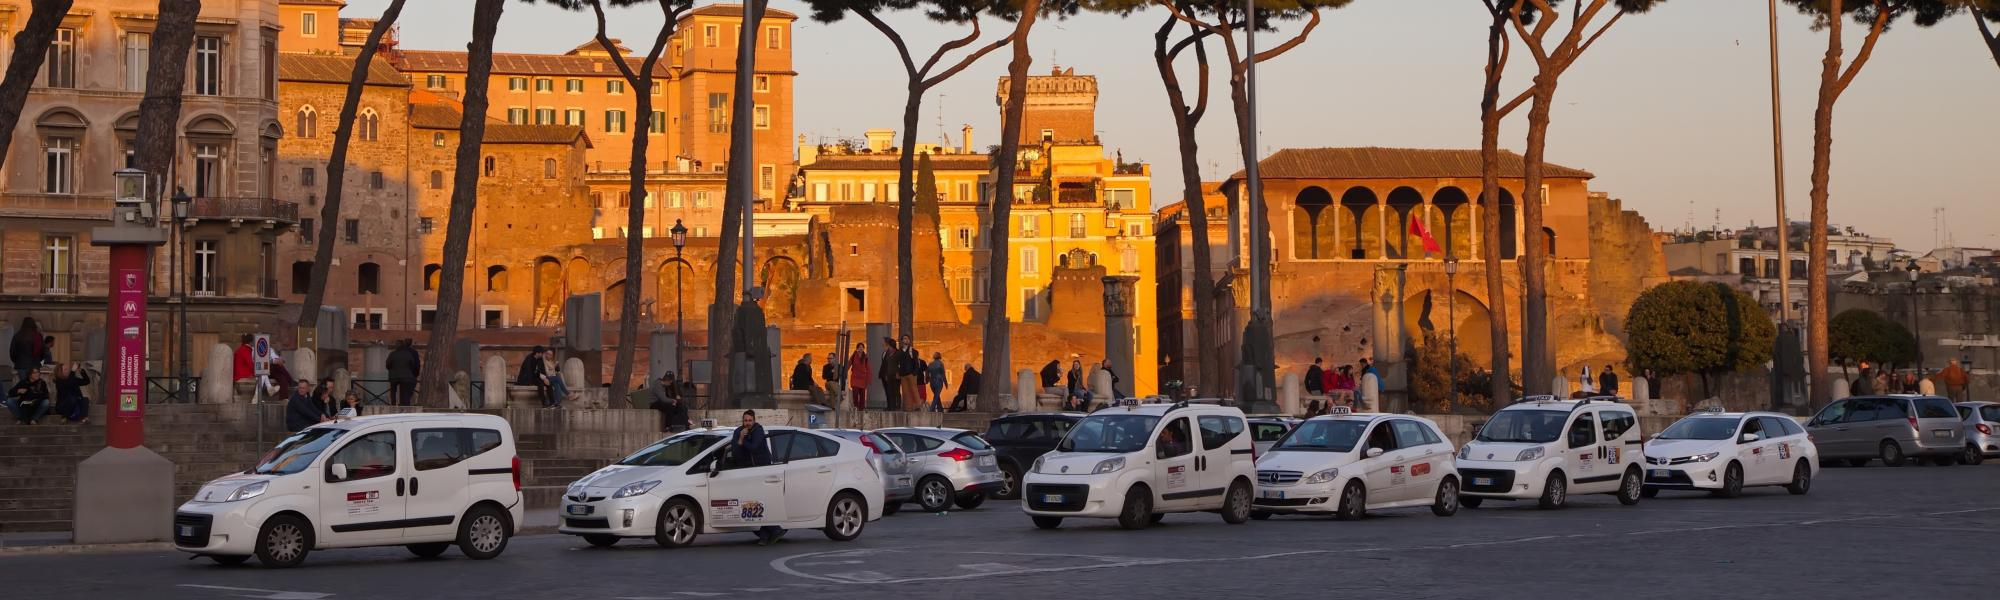 rome dusk taxis lining up